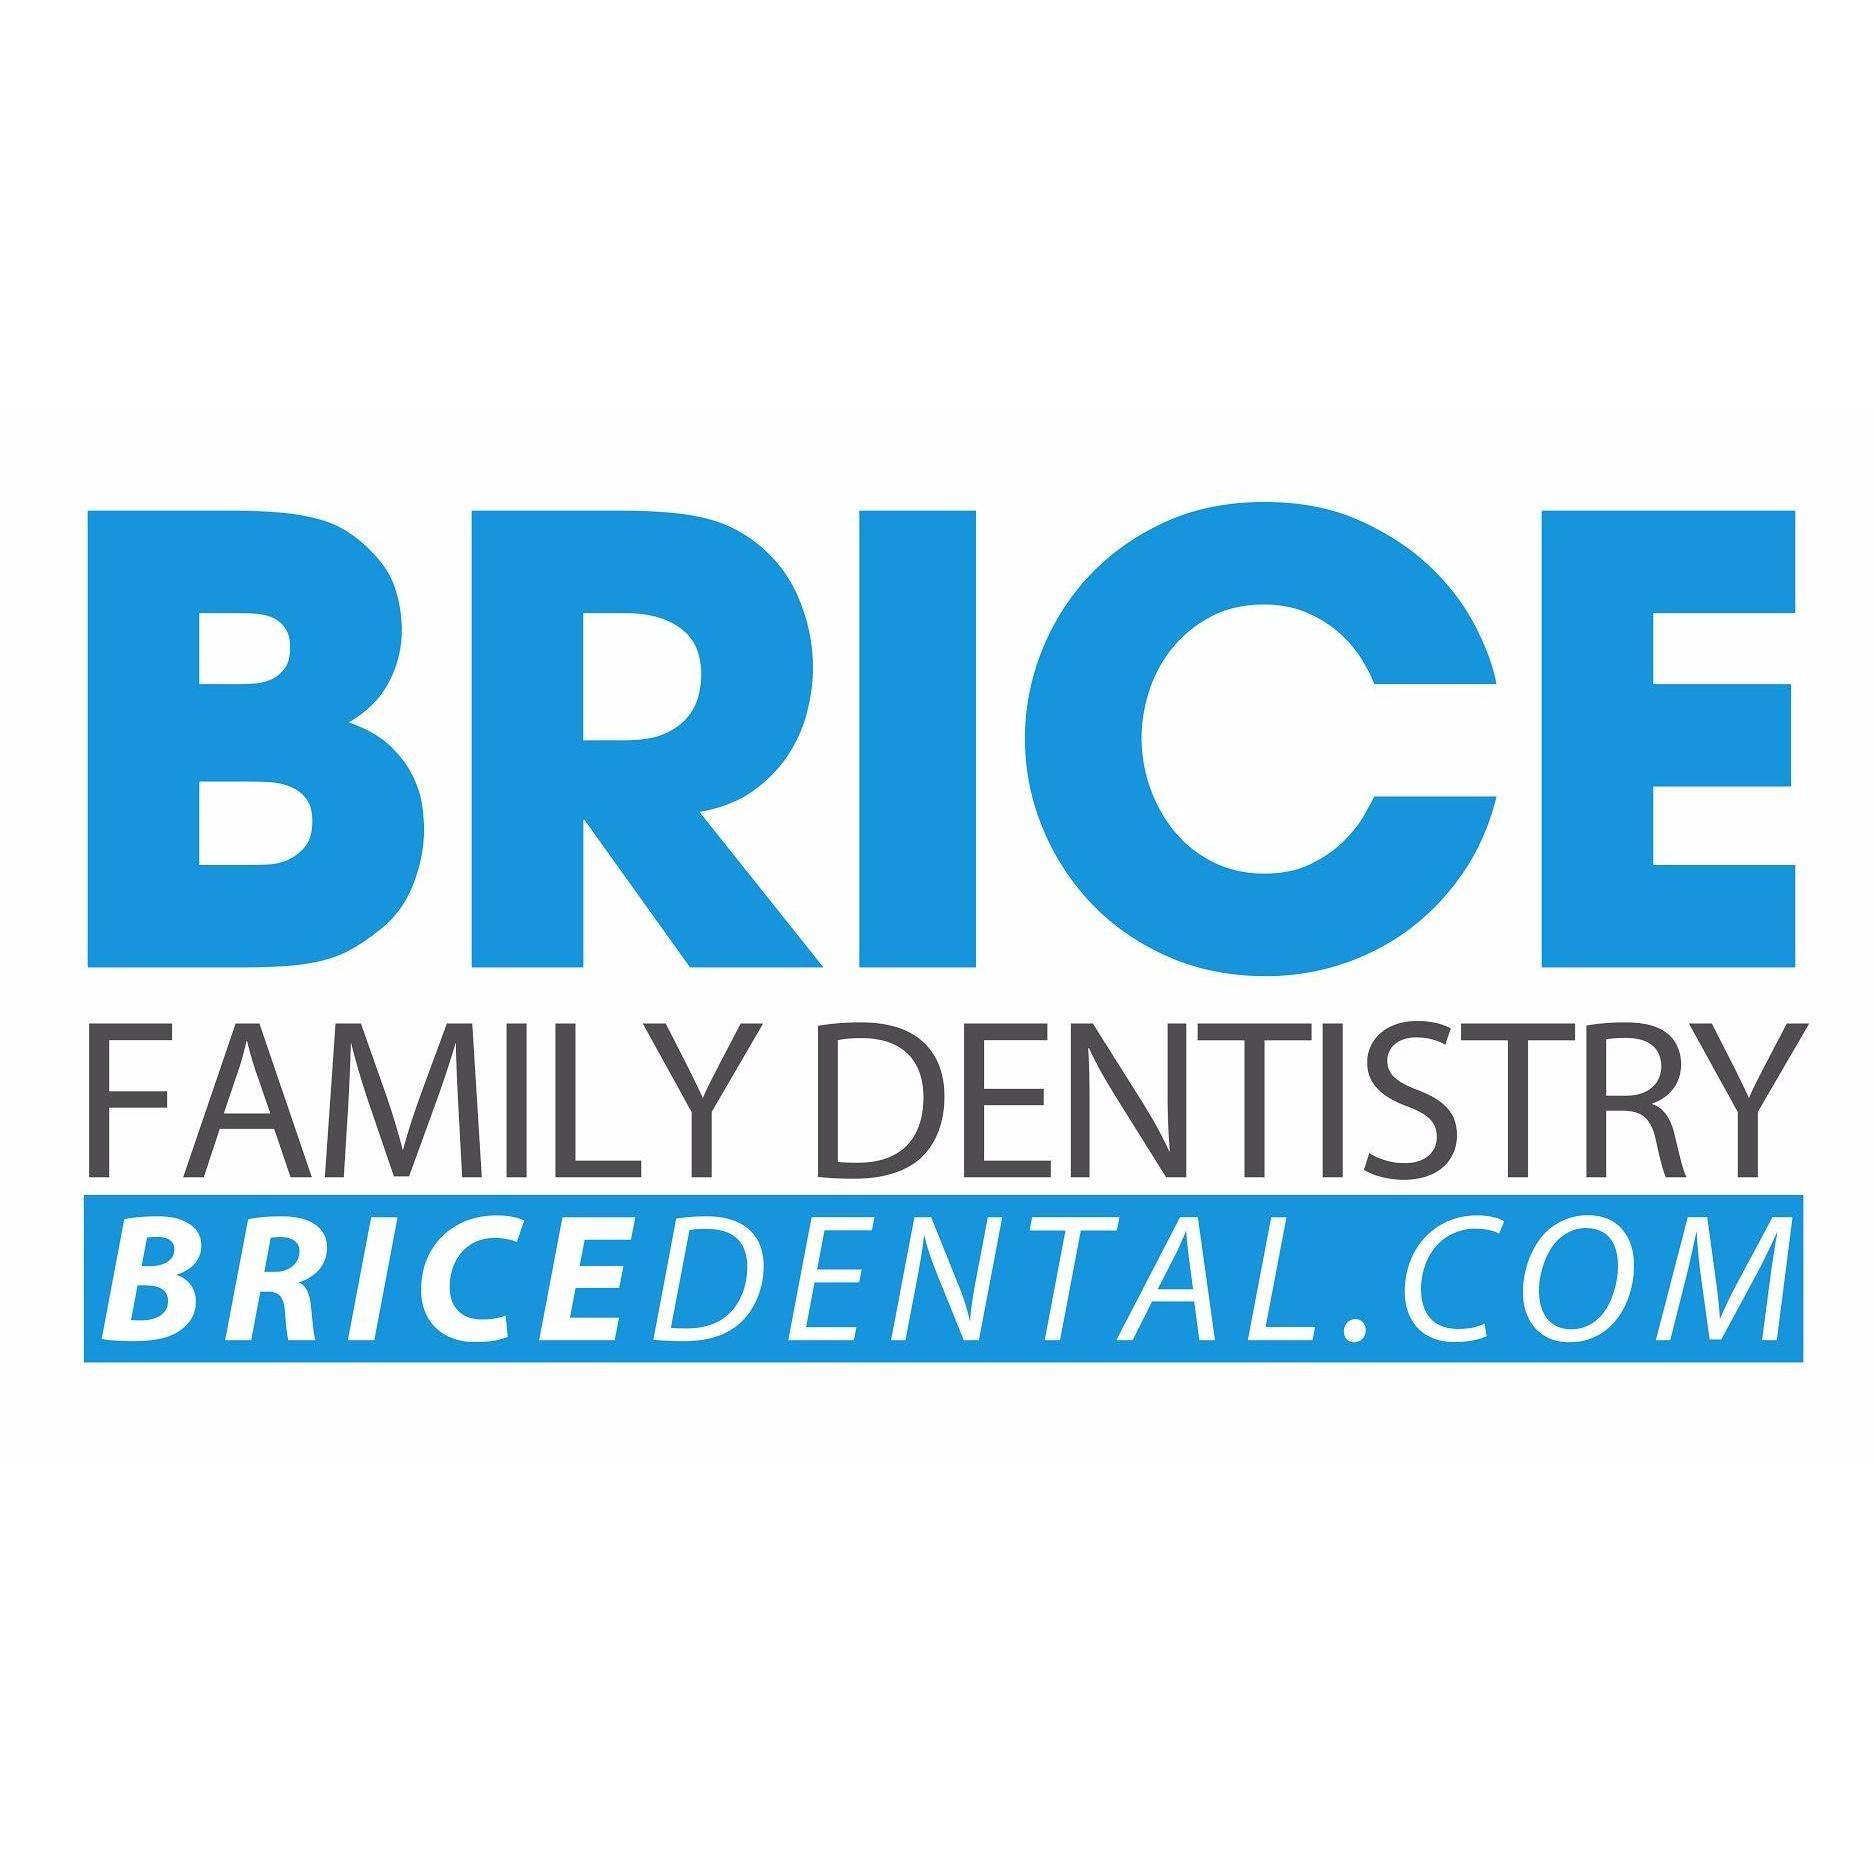 Brice Family Dentistry